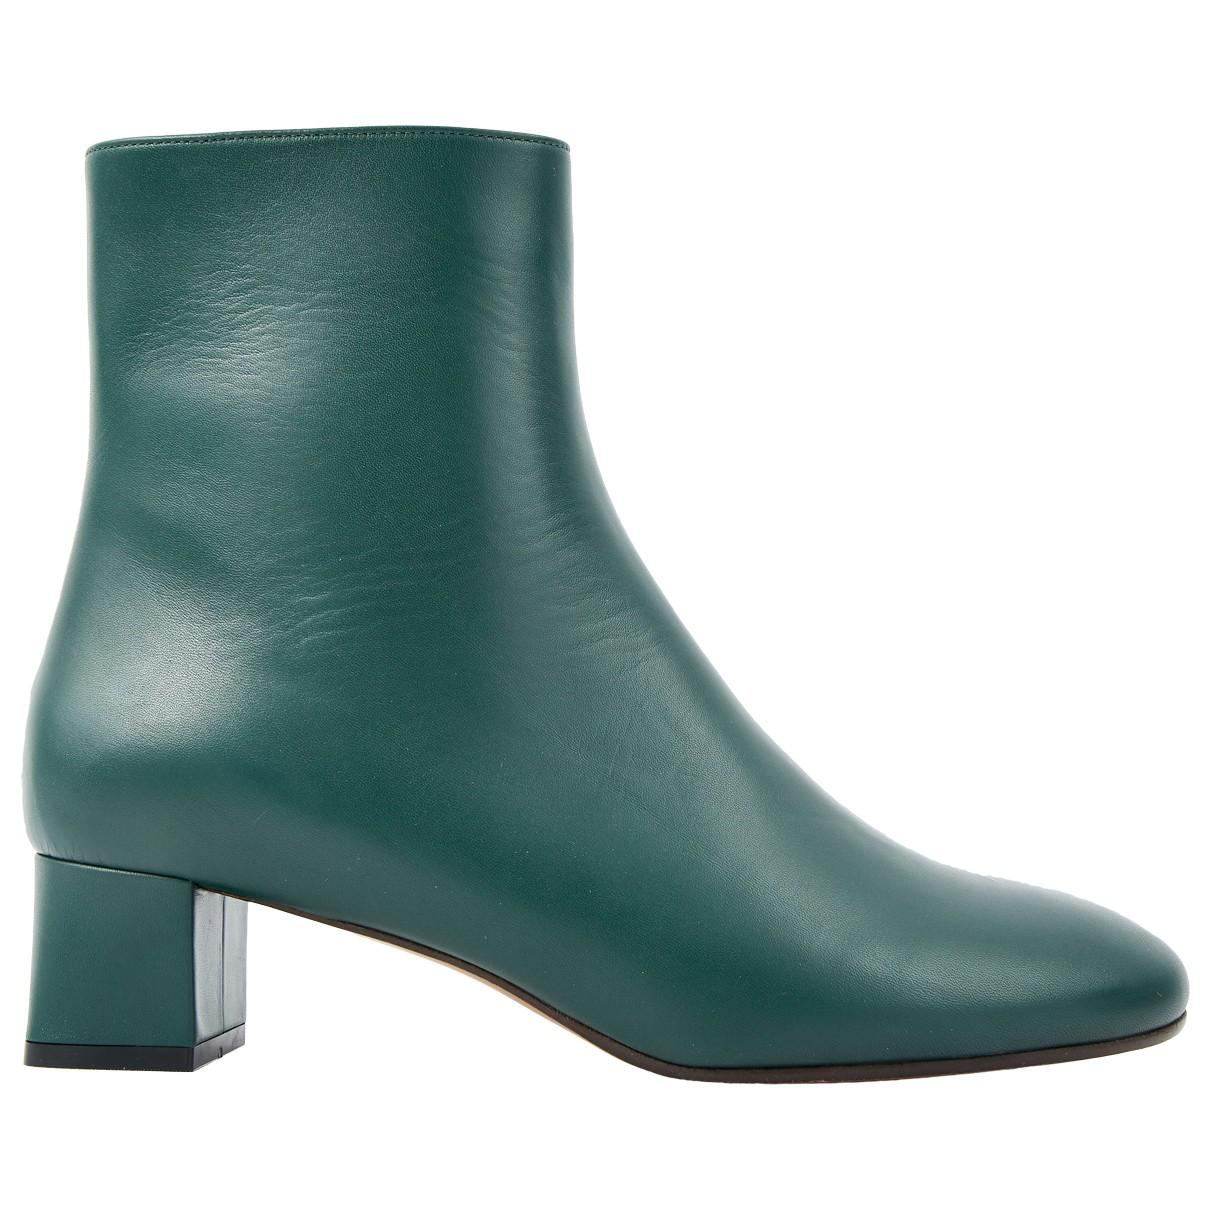 Pre-owned - Leather ankle boots Marni Amazon Cheap Price Free Shipping Discounts 3R8h1PyG7b